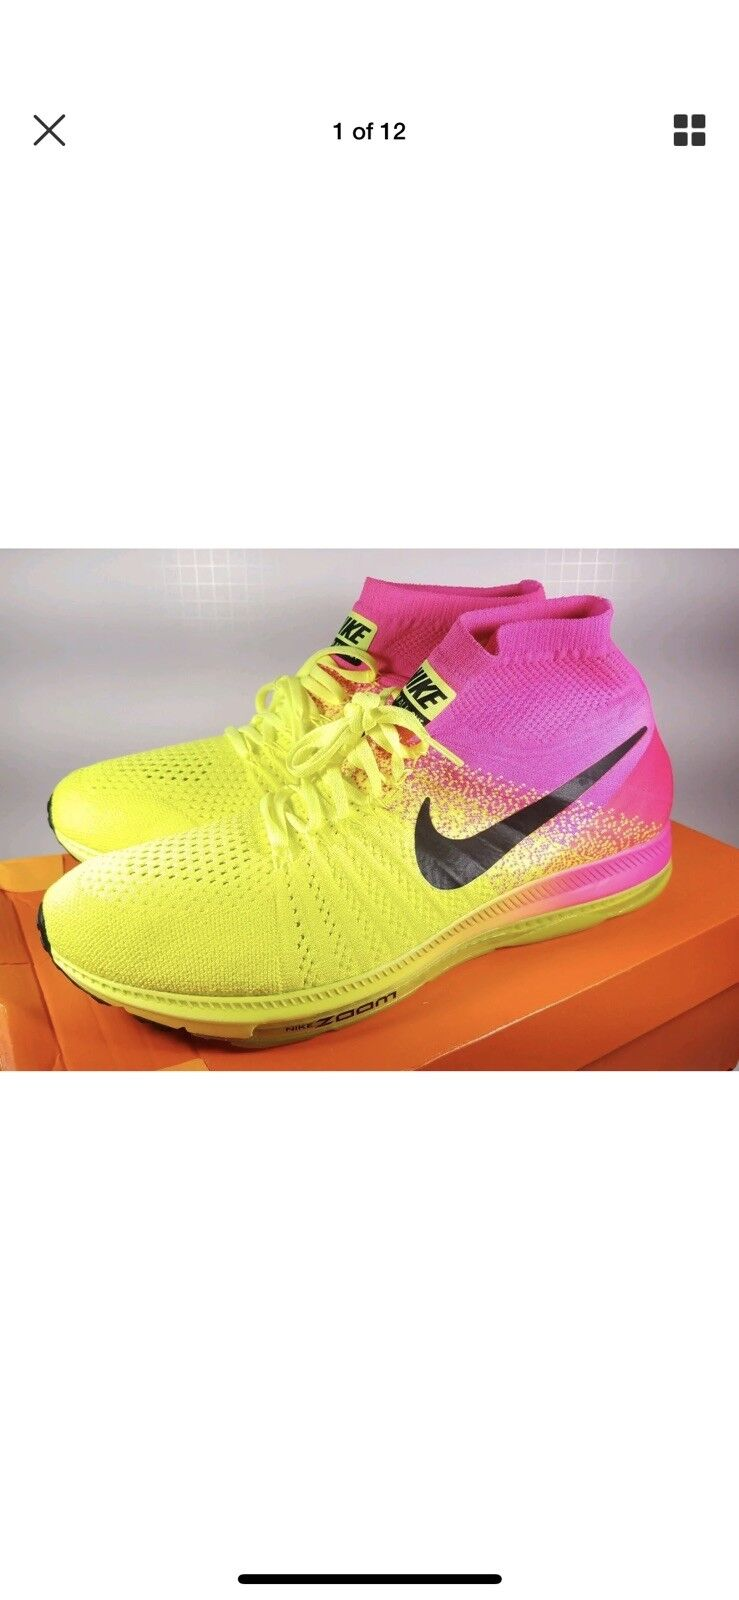 Nike Sz 10.5Running shoes Zoom All Out Flyknit OC Rio Volt Pink 845716-999 Men